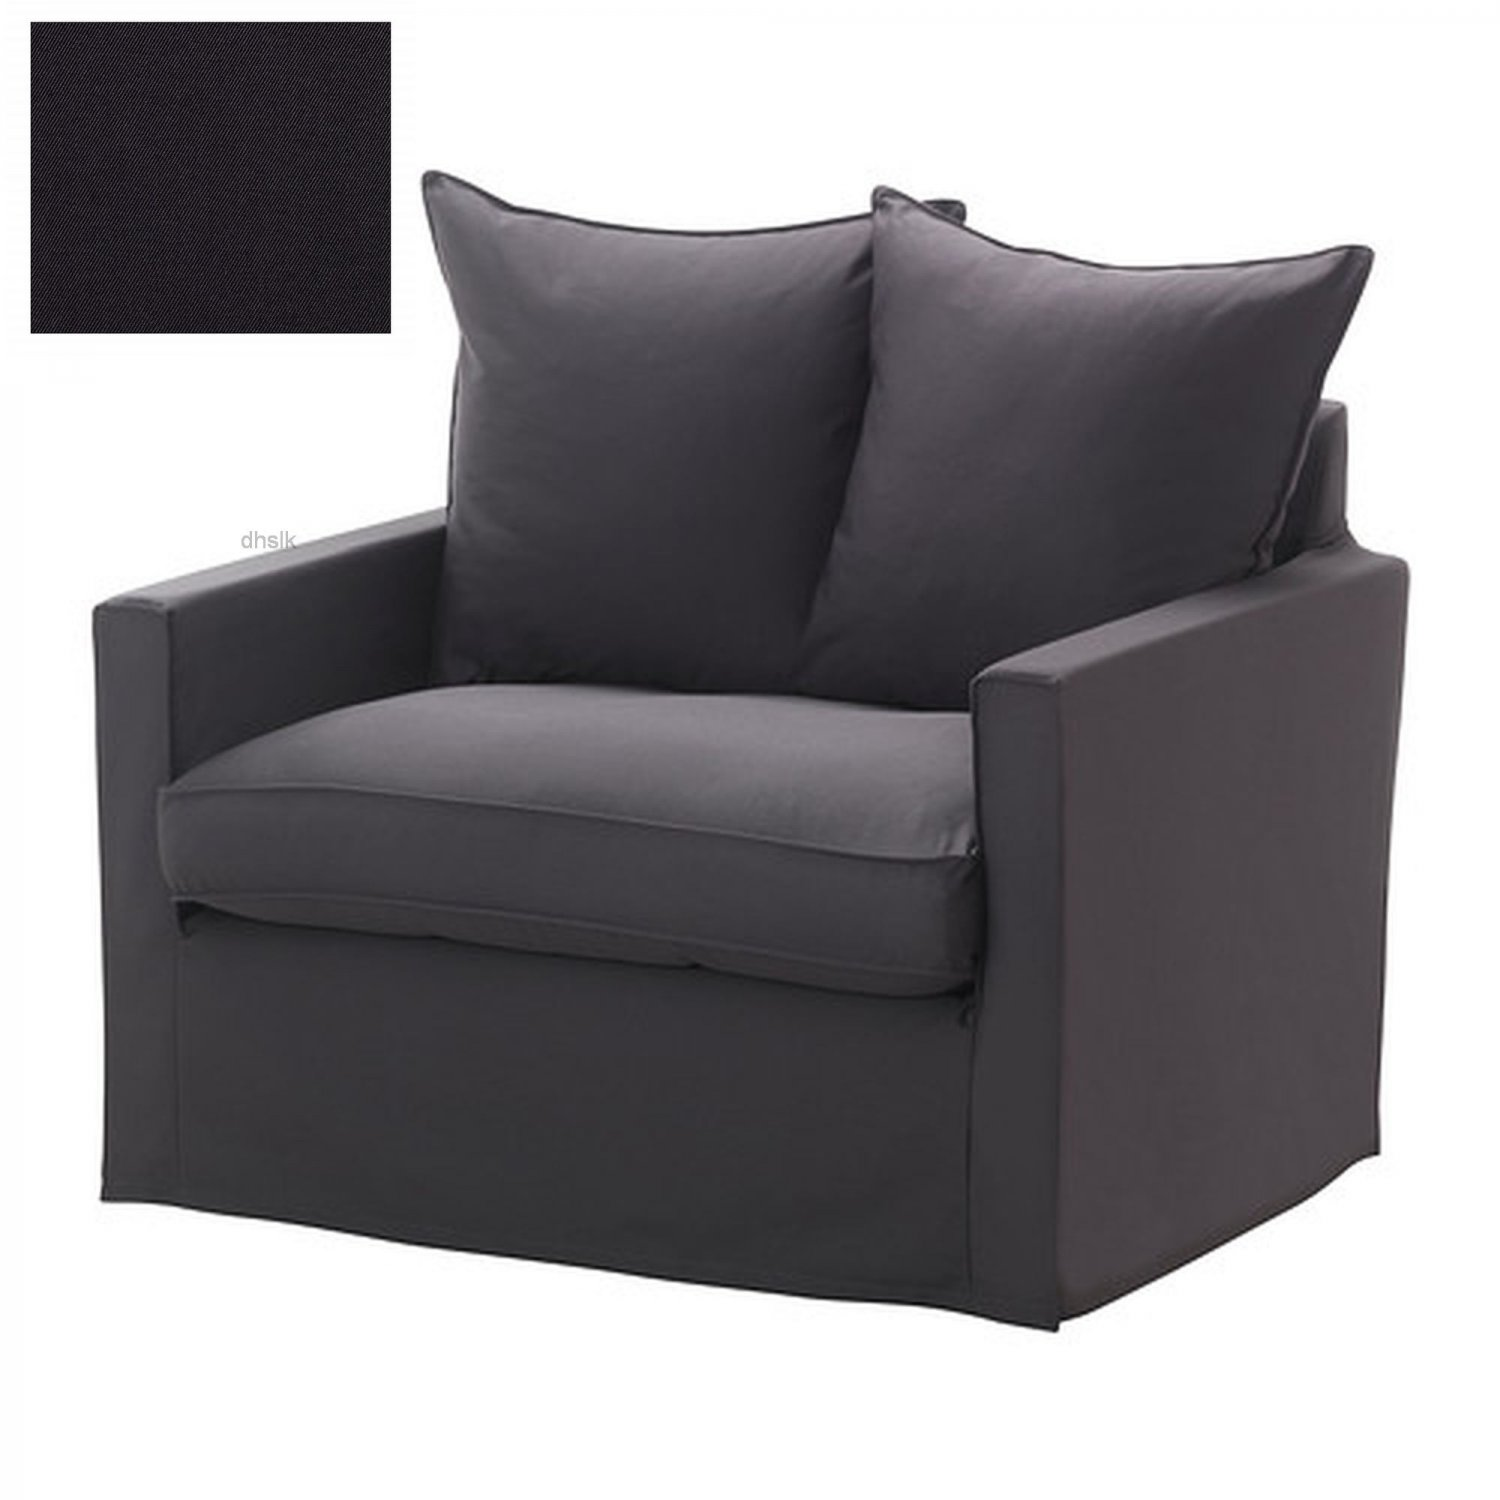 dark grey sofa cover faux leather paint ikea harnosand 1 seat chair slipcover armchair